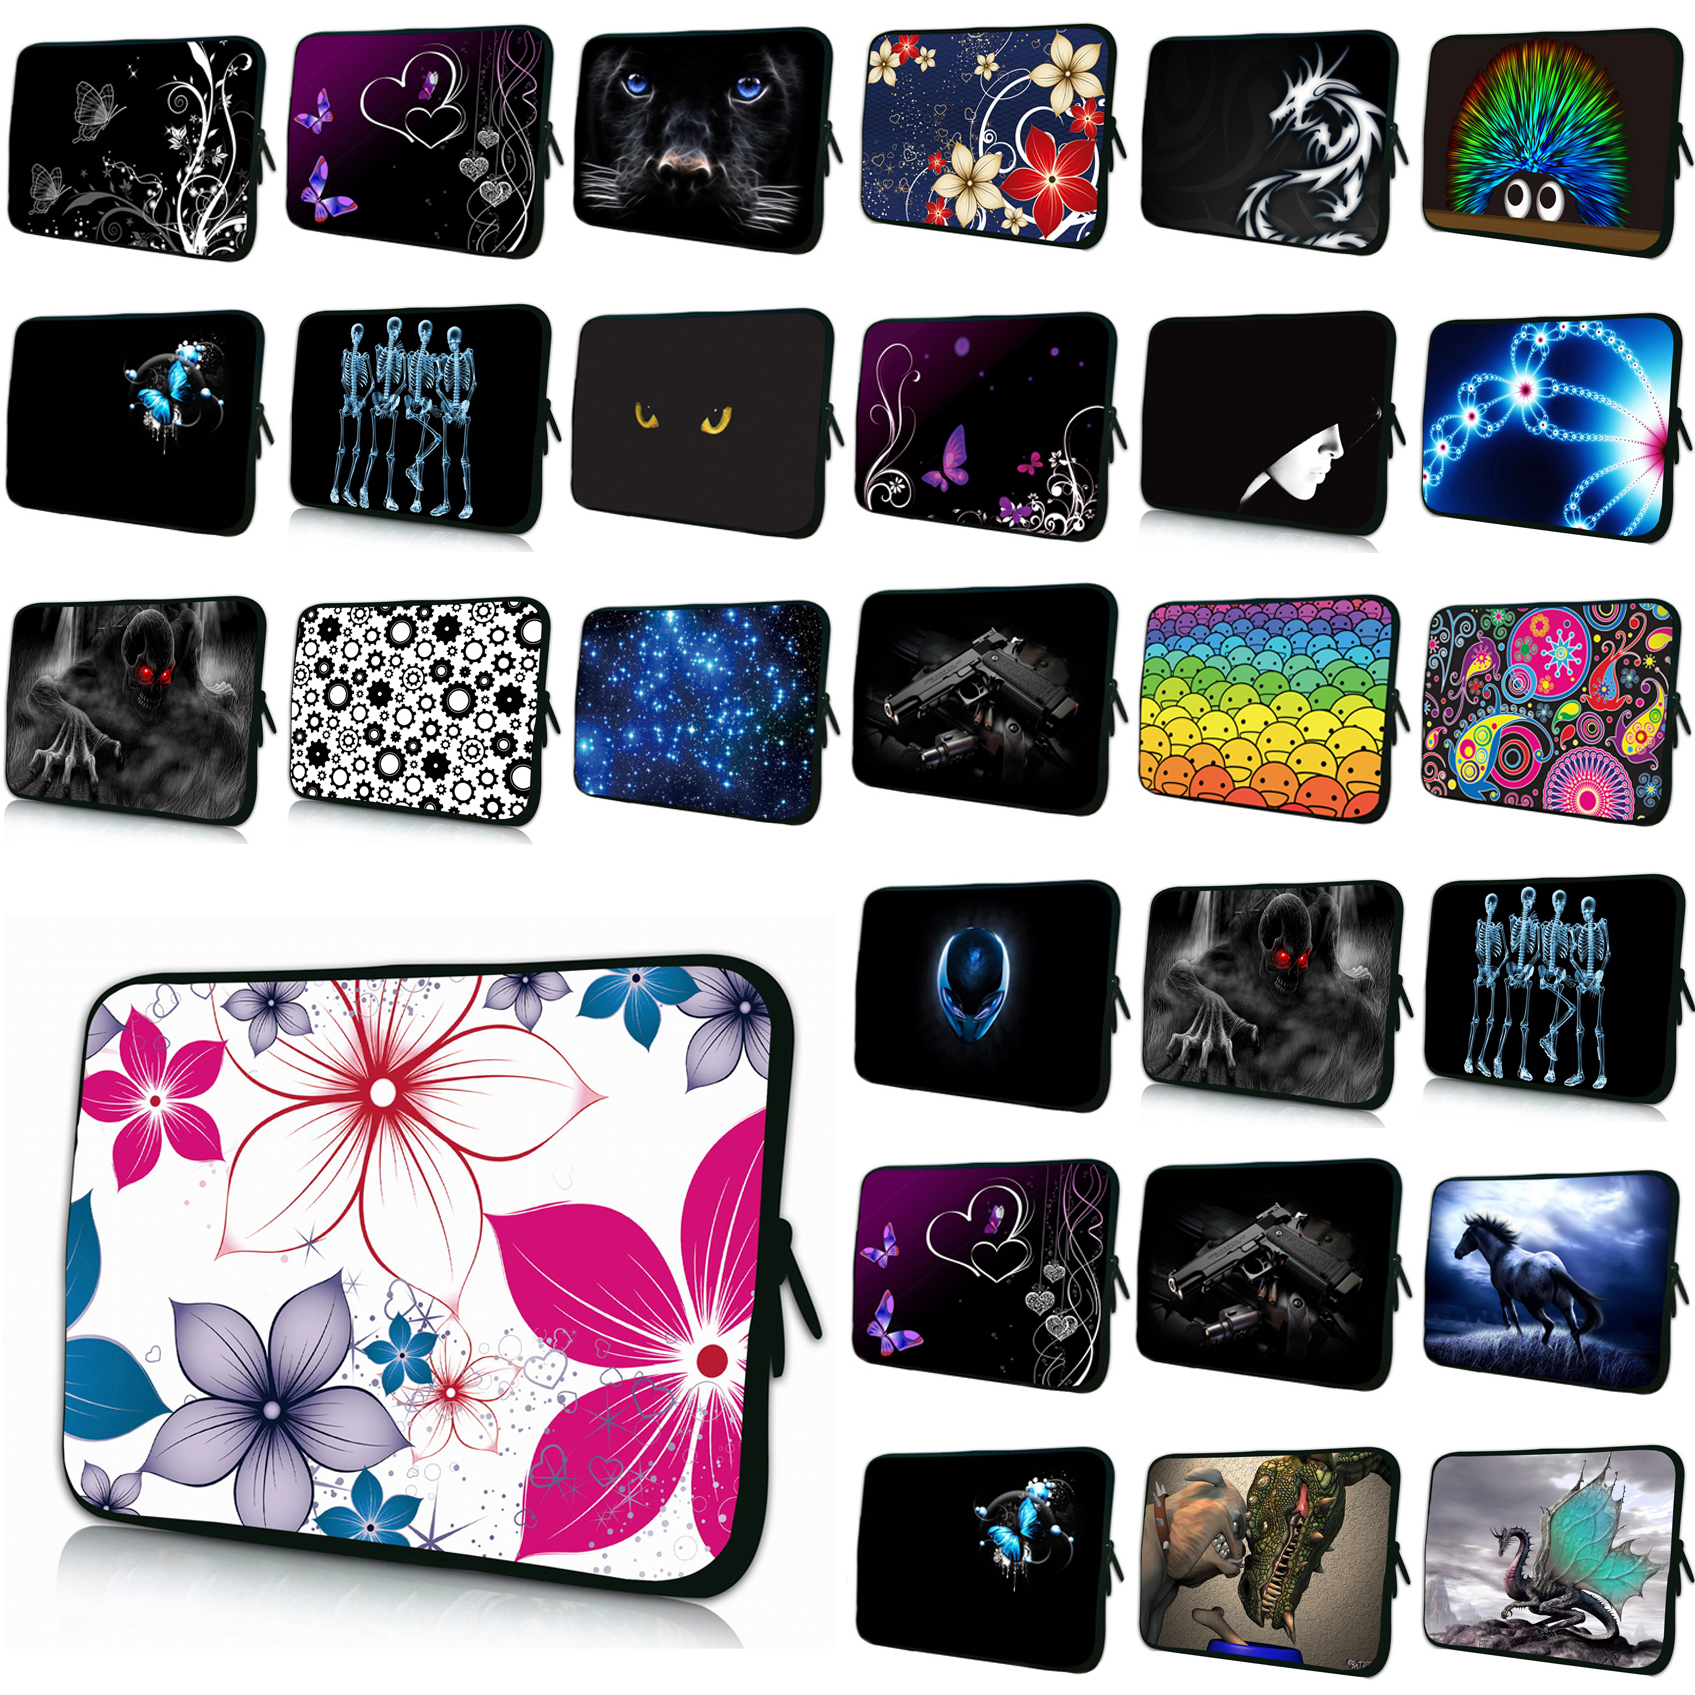 Laptop Bag 15.6 15.4 13.3 11.6 Netbook Nylon Inner Cases For Macbook Air Tablet 10.1 12 14 Briefcase Netbook Pouch Cover Bags